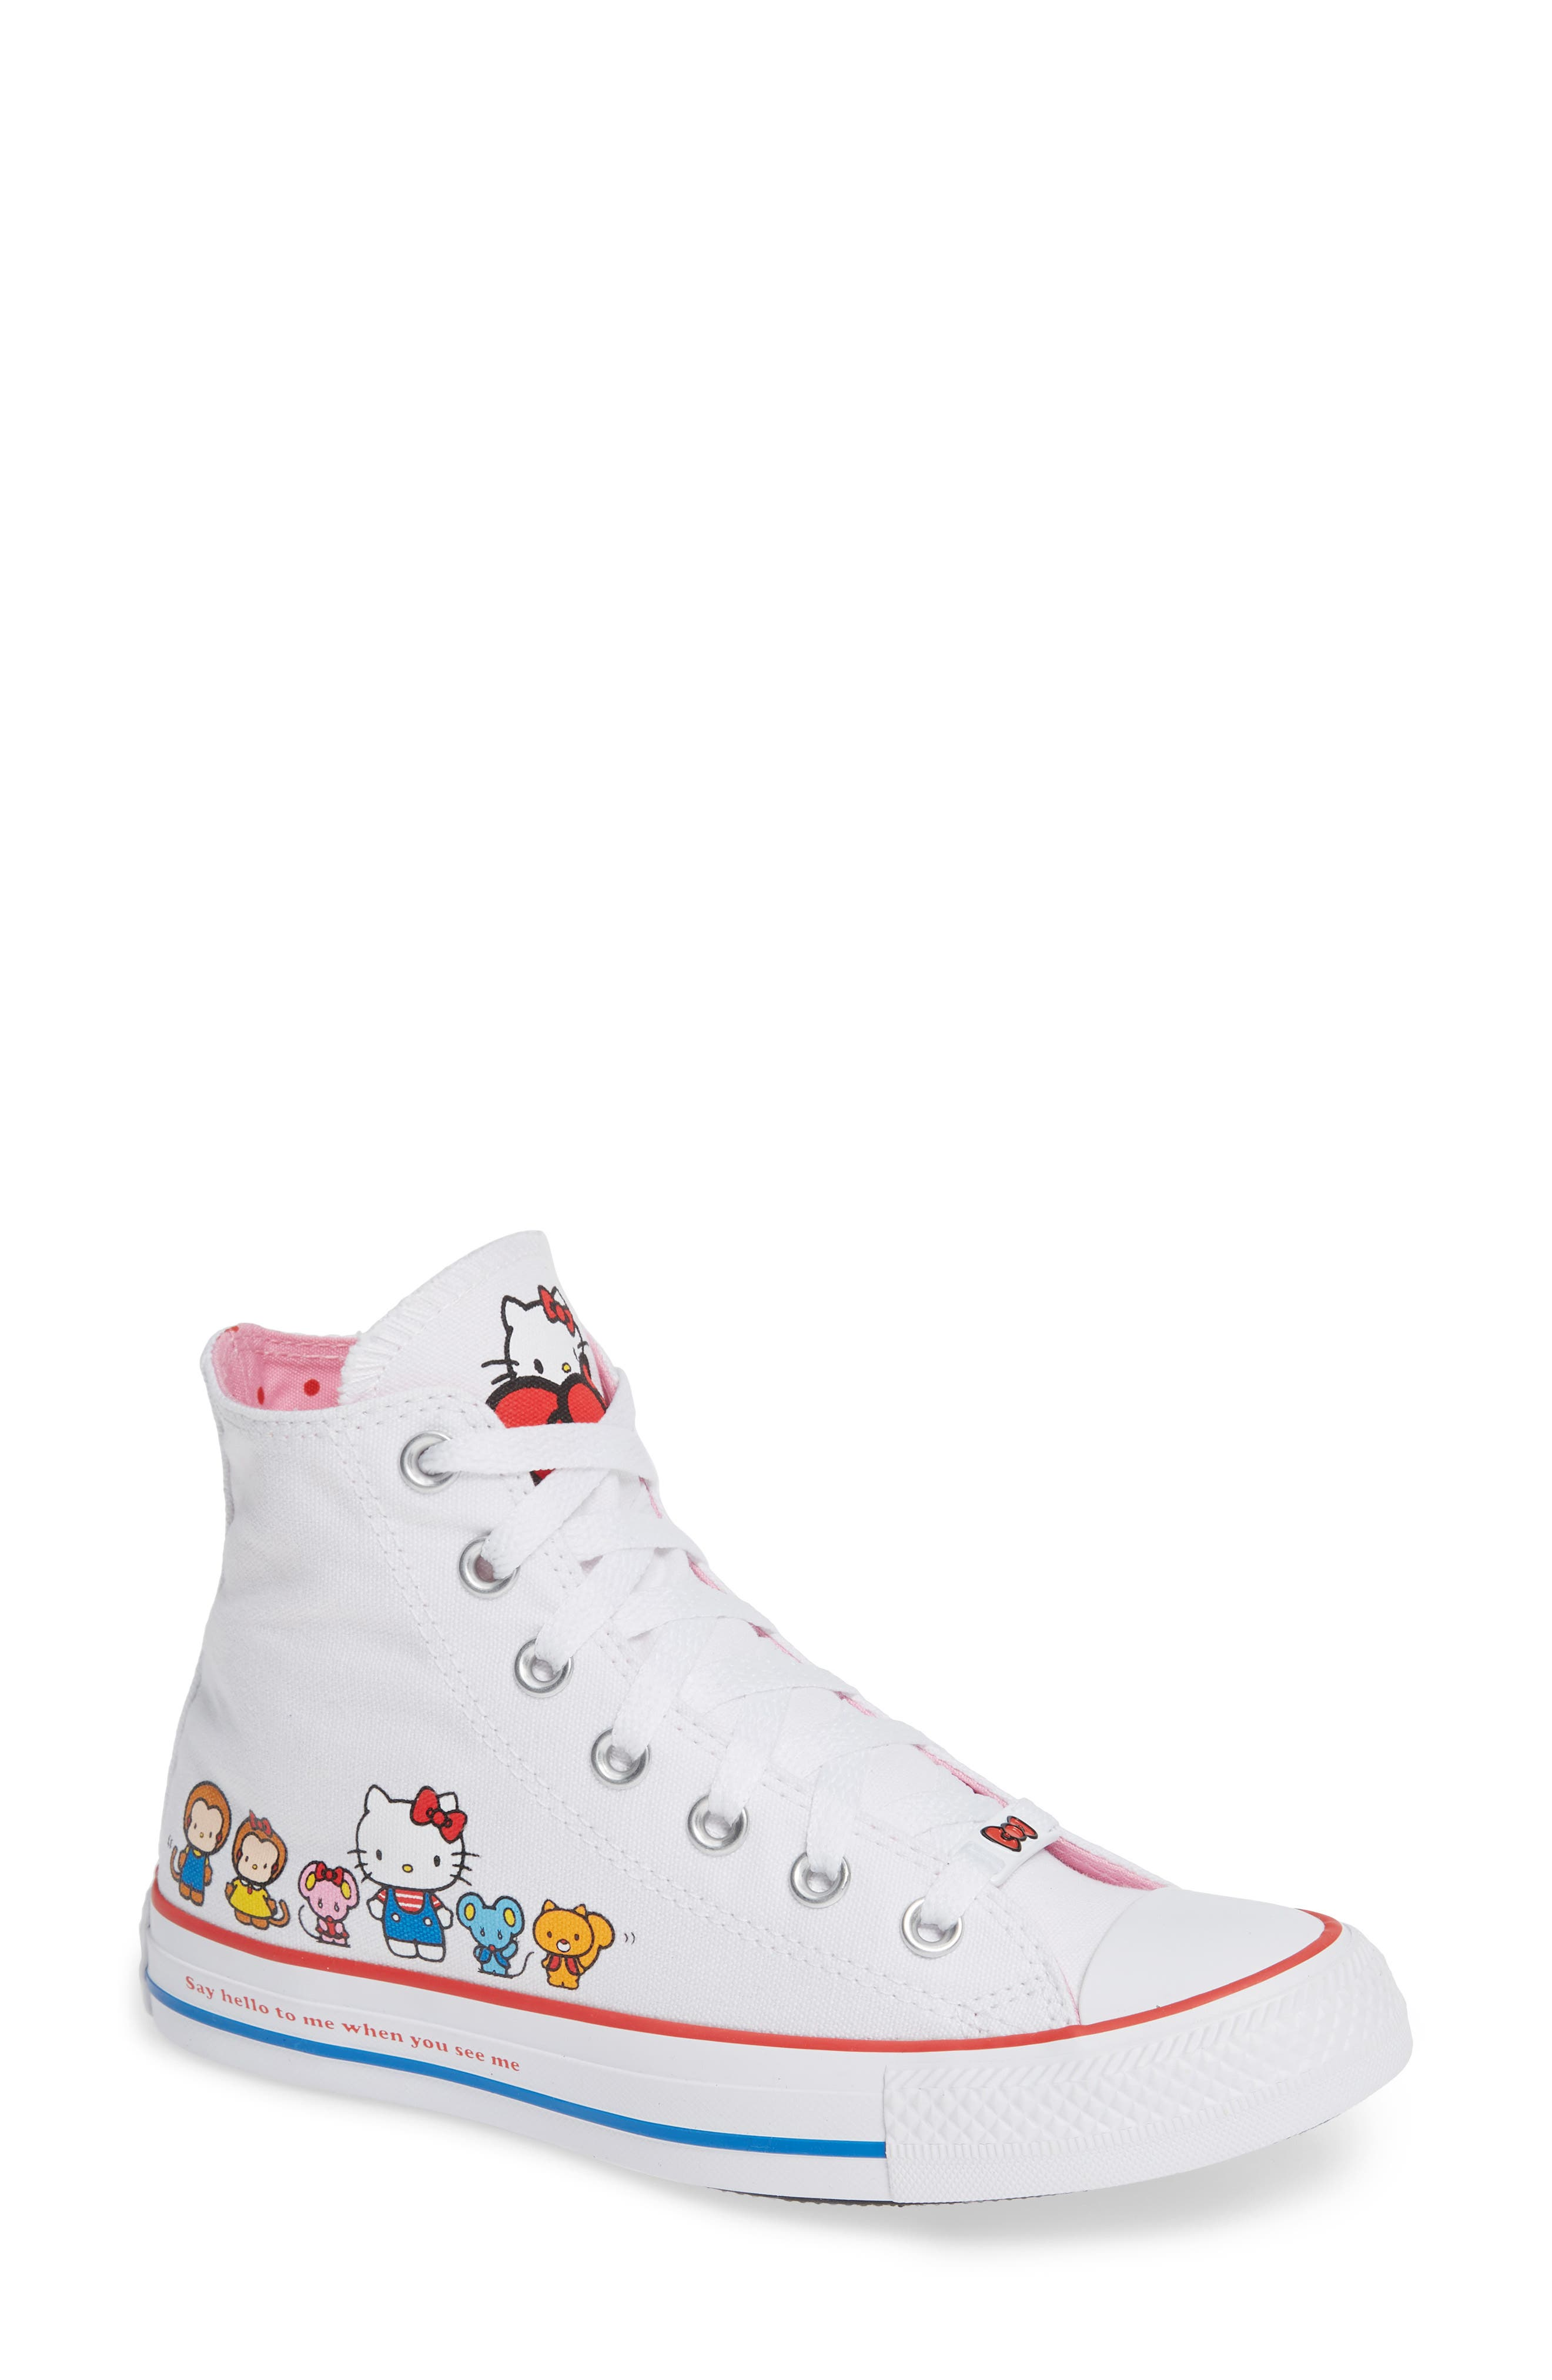 Chuck Taylor<sup>®</sup> All Star<sup>®</sup> Hello Kitty High Top Sneaker,                             Main thumbnail 1, color,                             102